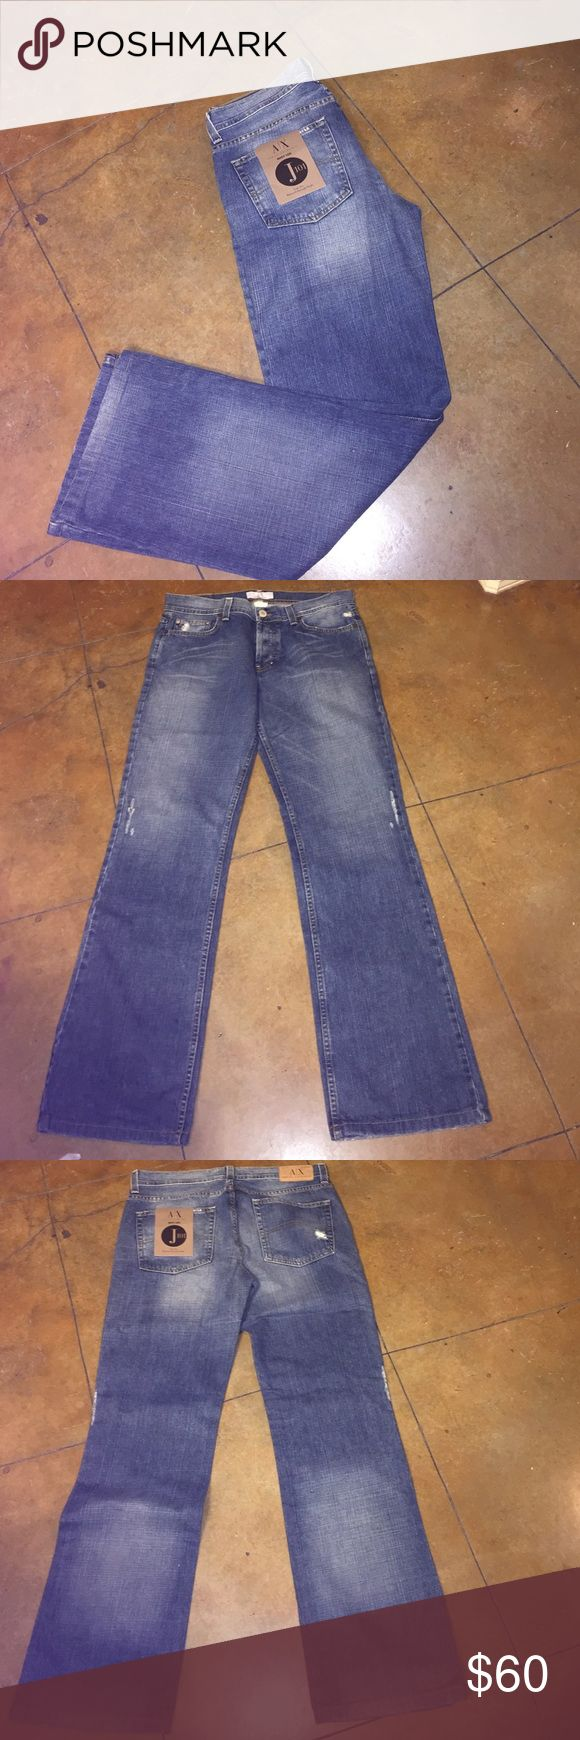 Armani Exchange Boot Leg Jeans J101 New boot leg low rise relaxed through thigh.  Jeans are 33 x 34 A/X Armani Exchange Jeans